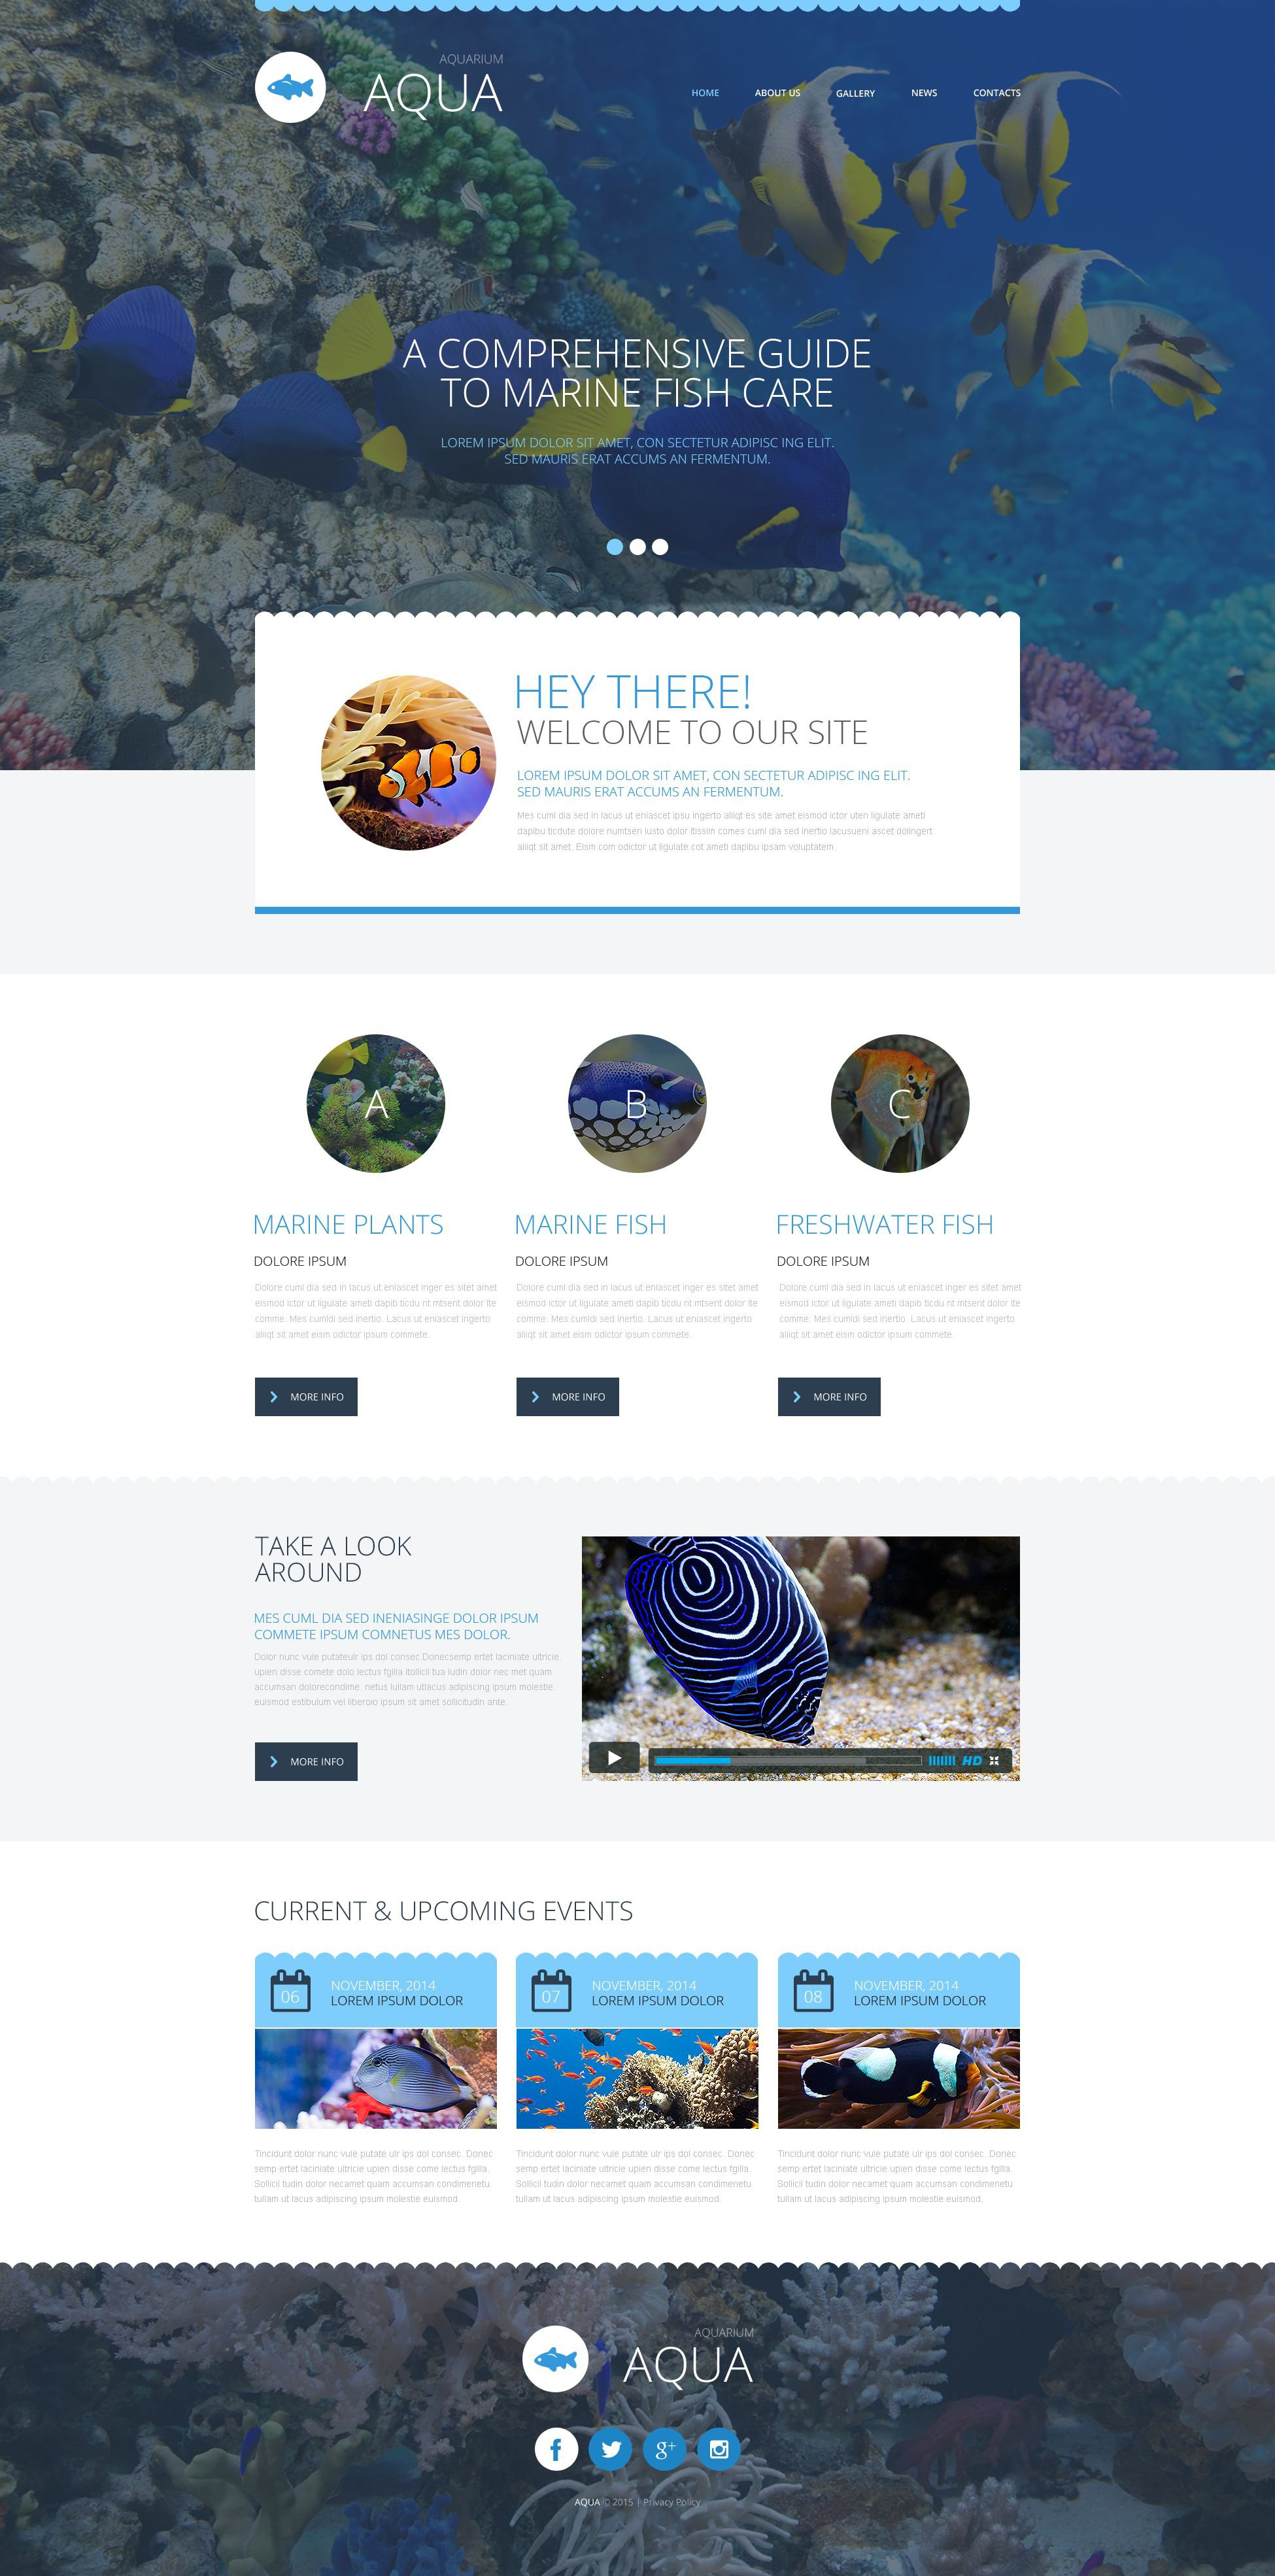 The Aquarium Aqua Responsive Javascript Animated Design 53119, one of the best website templates of its kind (animals & pets, most popular), also known as aquarium aqua website template, underwater website template, aquatic website template, zoo website template, sea-horse website template, dolphins website template, water website template, fishes website template, starfish website template, tortoise website template, photos website template, gallery website template, life website template, show website template, preserve website template, events website template, visitors website template, educational program website template, aquarium website template, coral and related with aquarium aqua, underwater, aquatic, zoo, sea-horse, dolphins, water, fishes, starfish, tortoise, photos, gallery, life, show, preserve, events, visitors, educational program, aquarium, coral, etc.